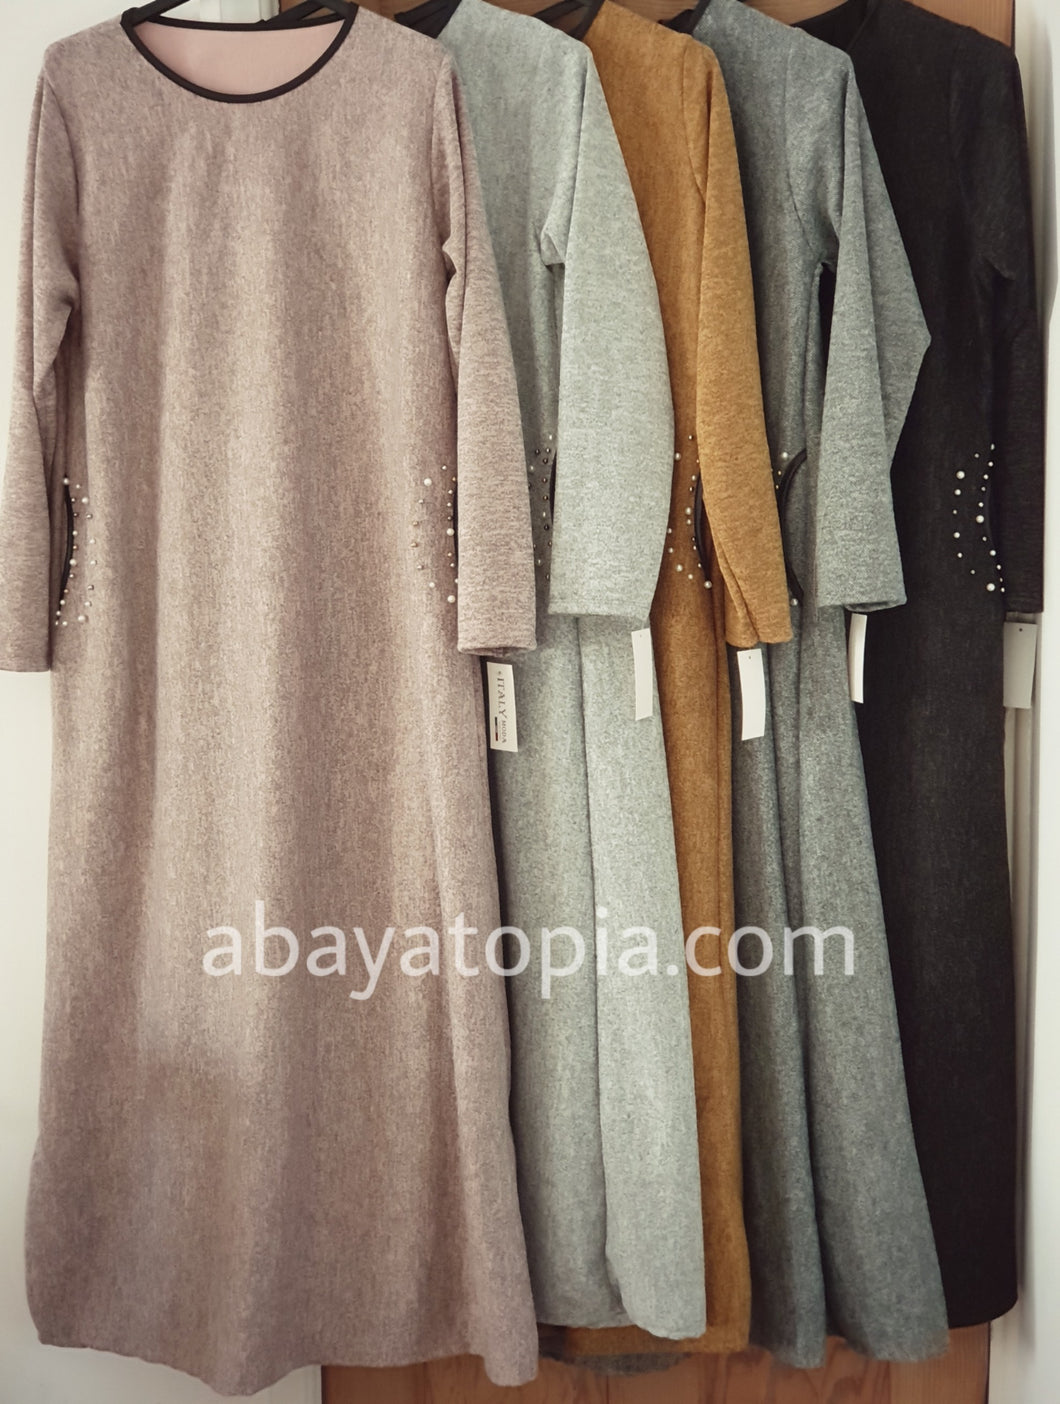 Warm Loose Dress with Pearl Detail  - Diff Colours